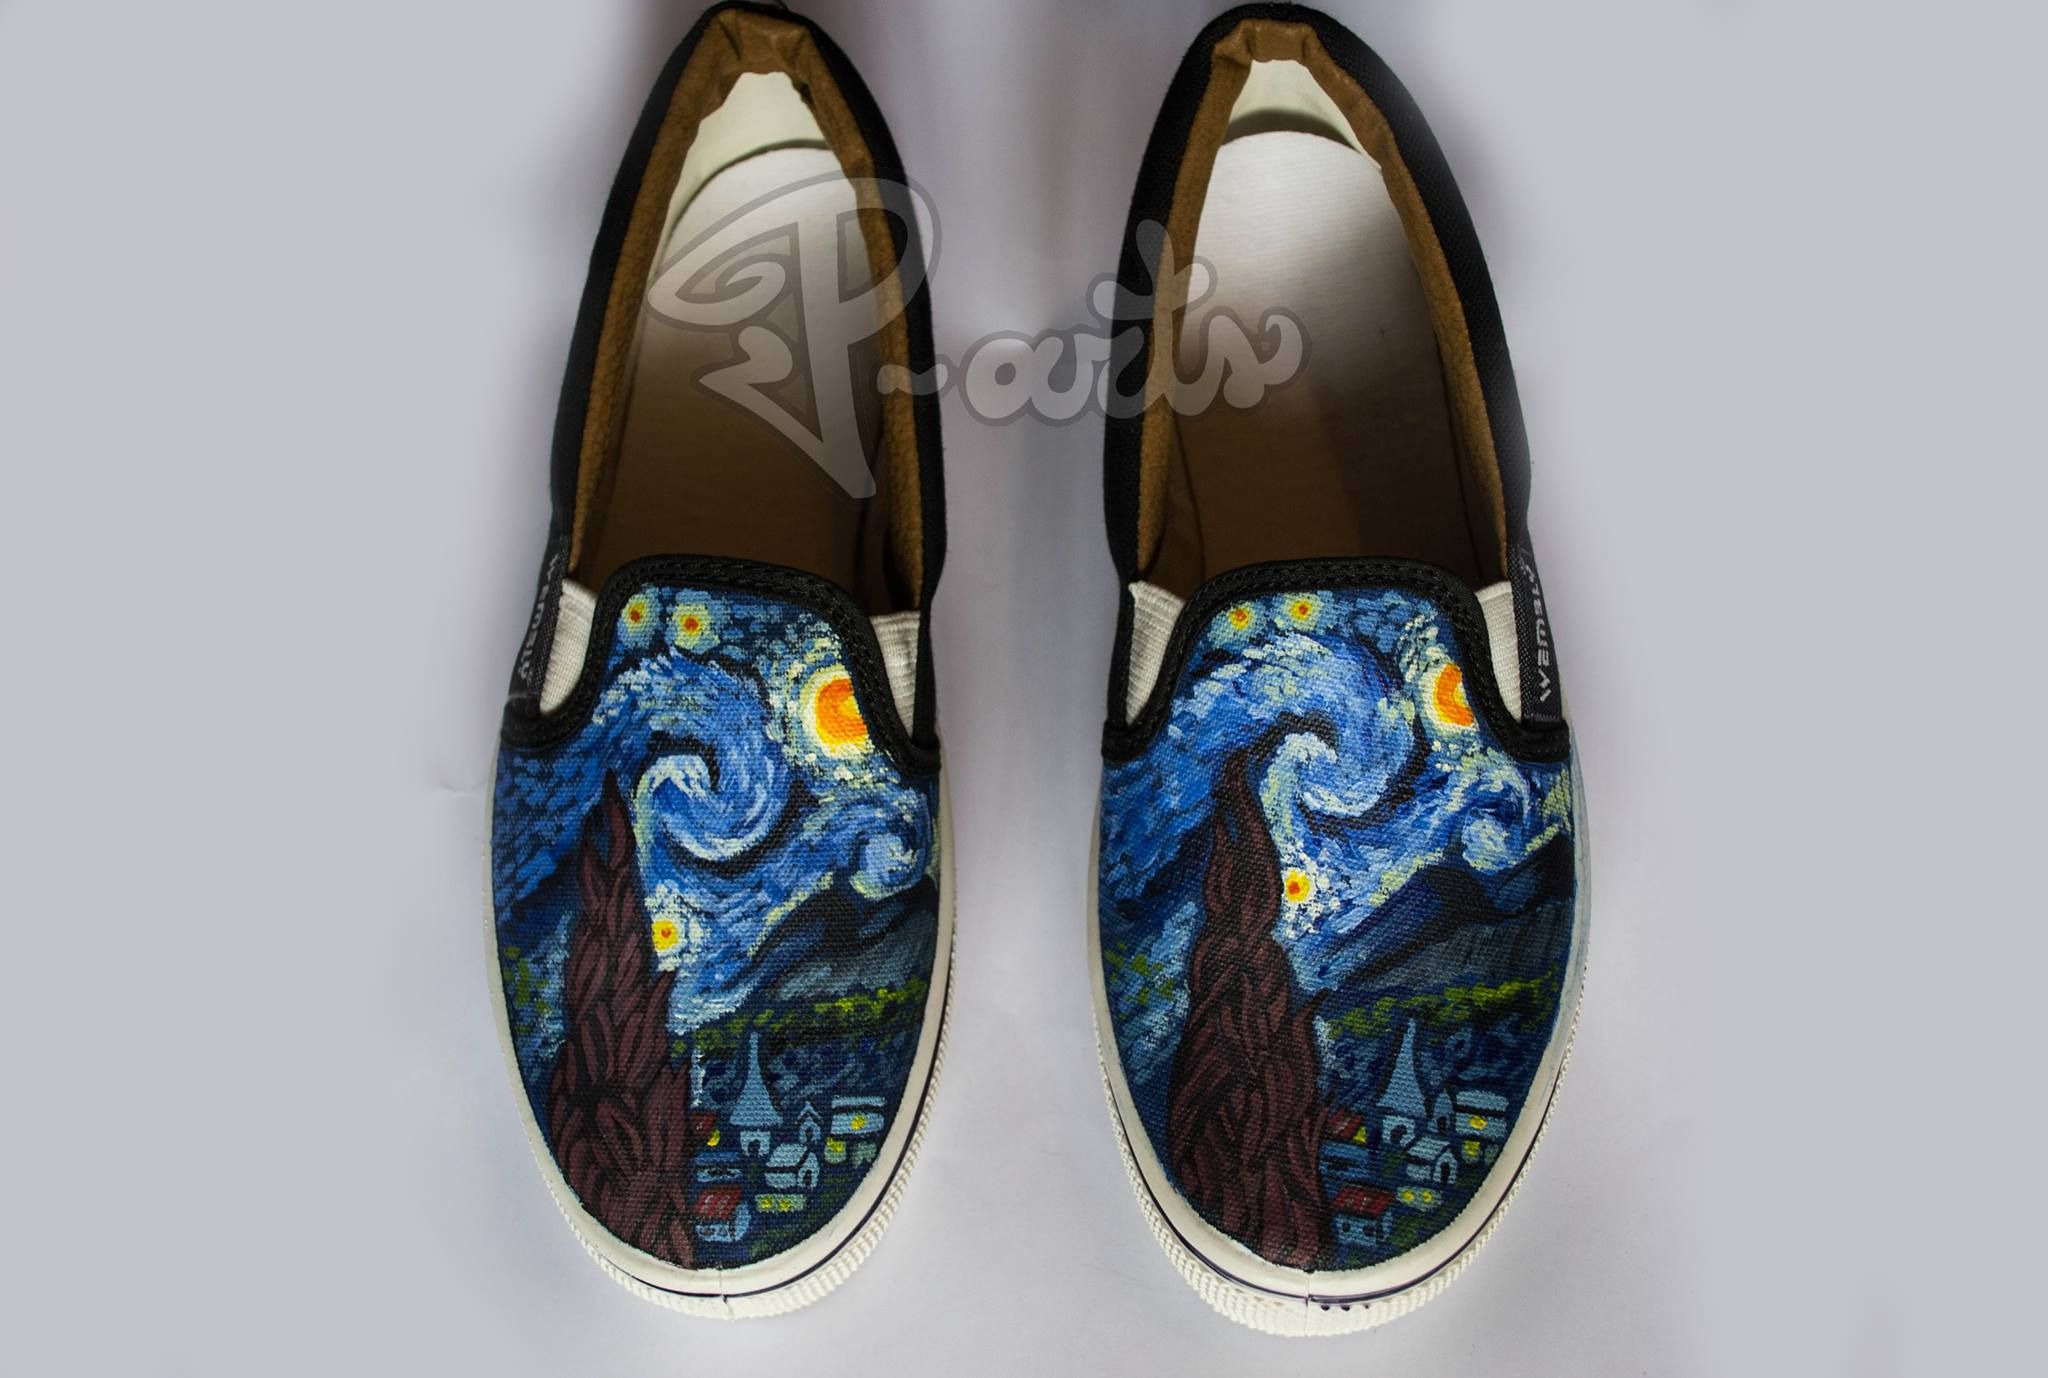 Shipping Worldwide  https://www.facebook.com/pages/P-arts-Custom-Shoes/301424800000368?ref_type=bookmark